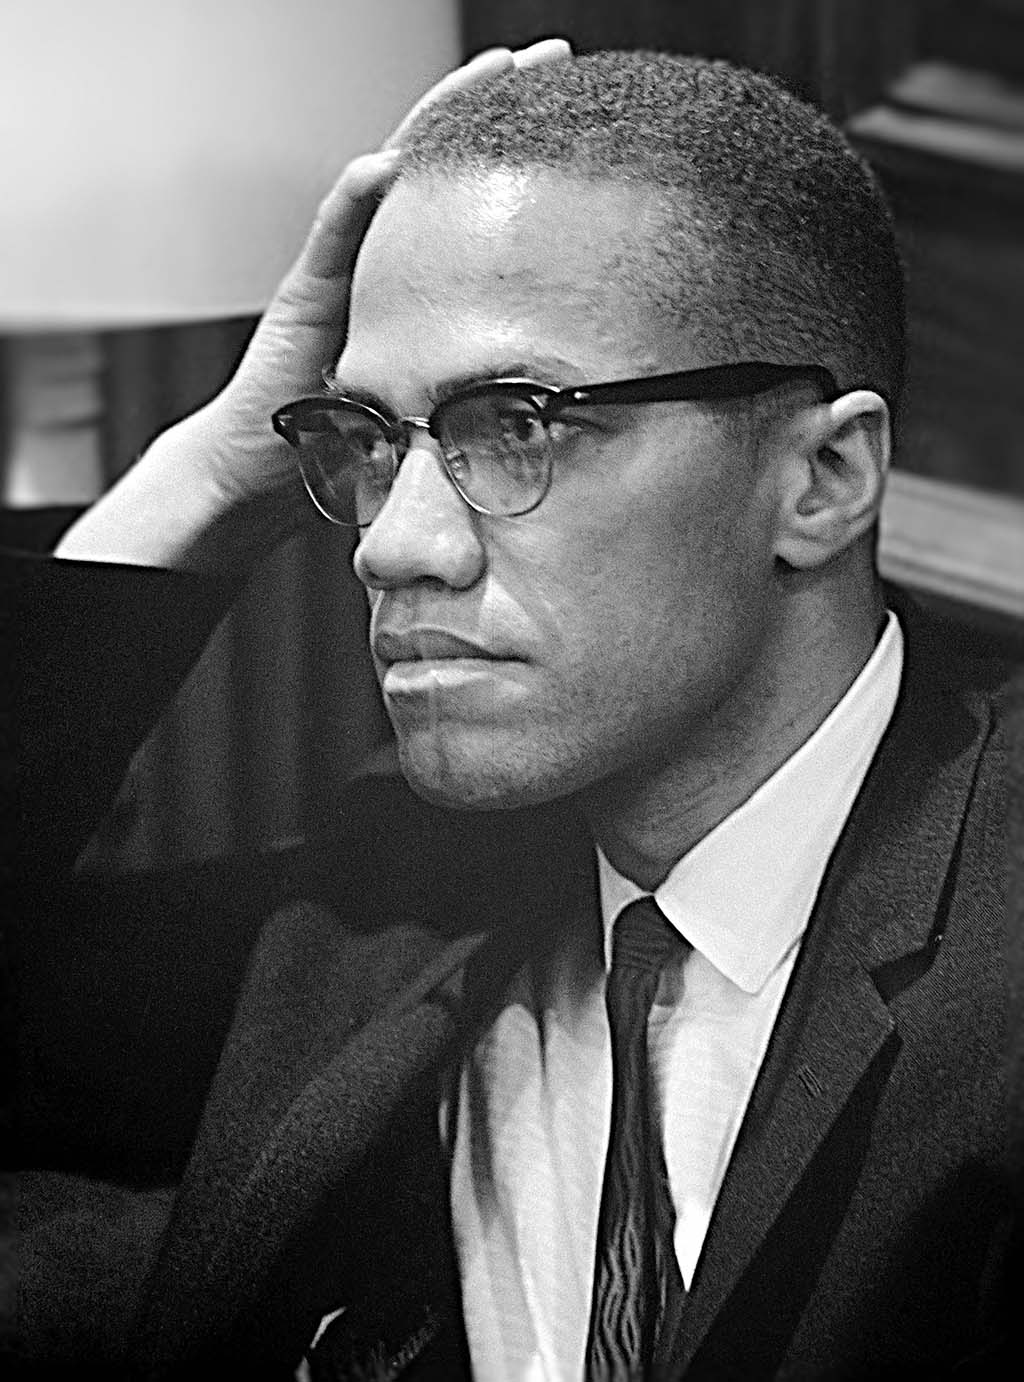 Portrait of Malcolm X at a Martin Luther King Press Conference on March 26, 1964. Malcolm X appears to be listening, with his head resting on his hand.